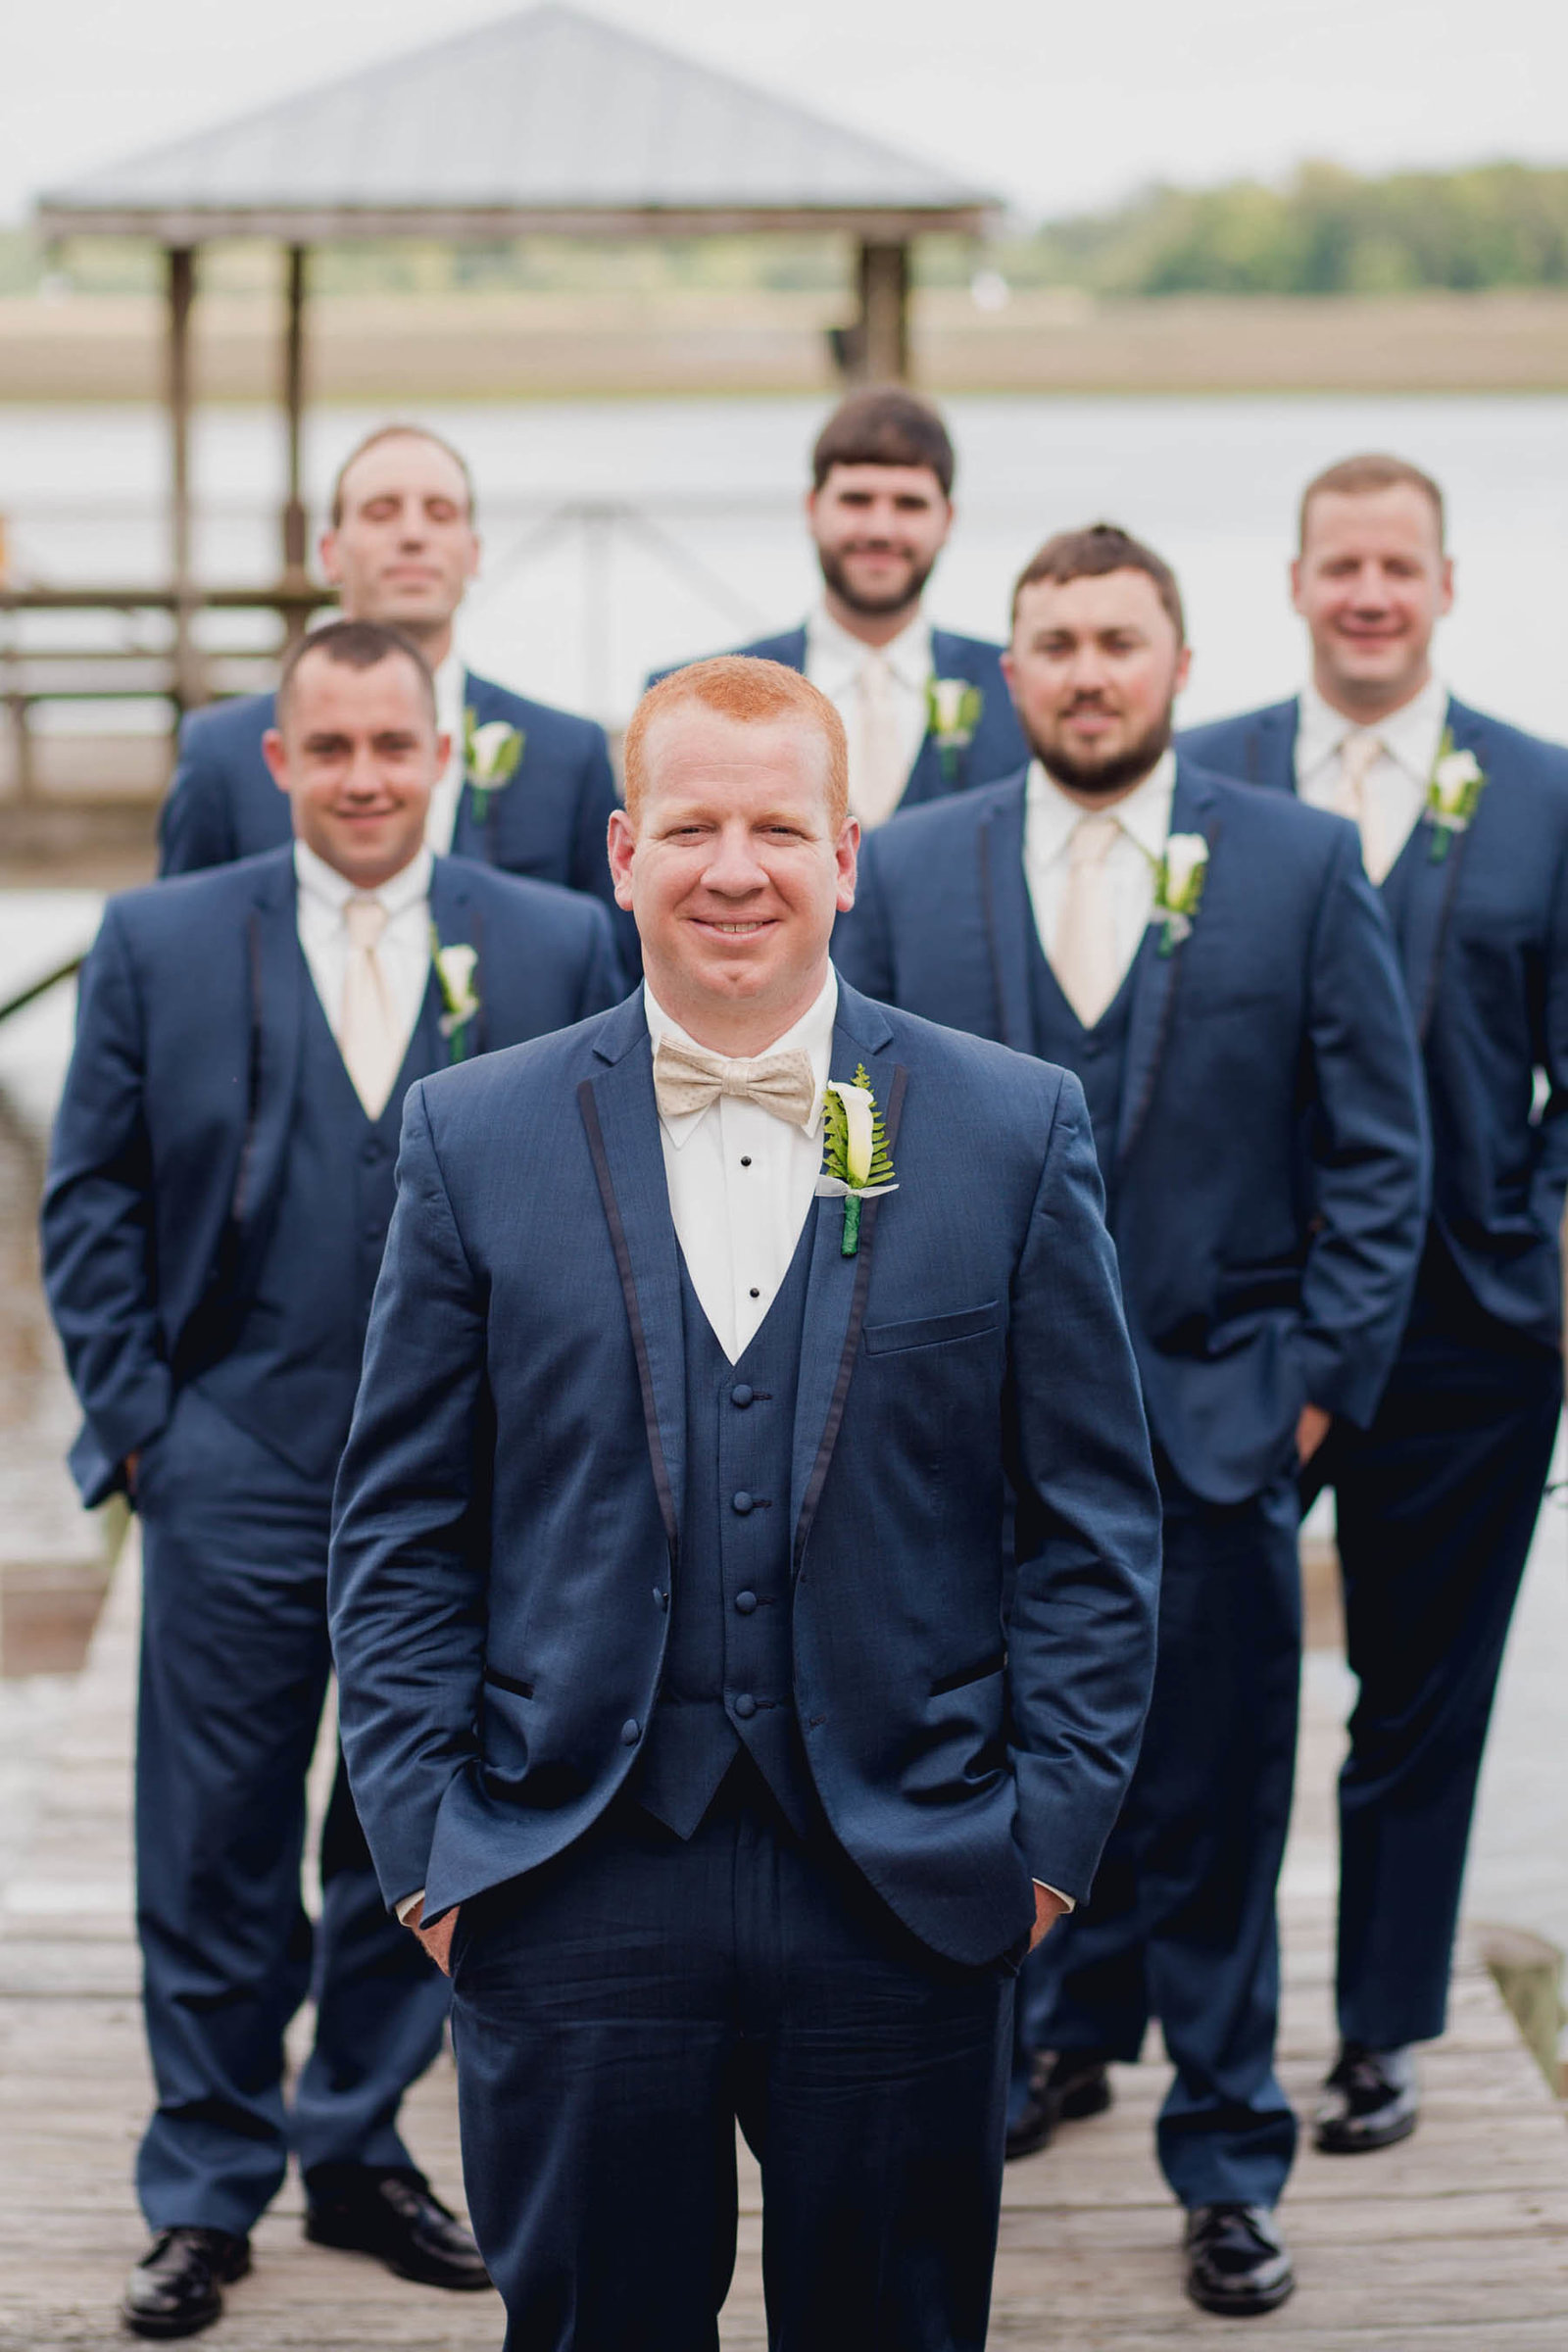 Groom and groomsmen stand on dock, Old Wide Awake Plantation, Charleston, South Carolina